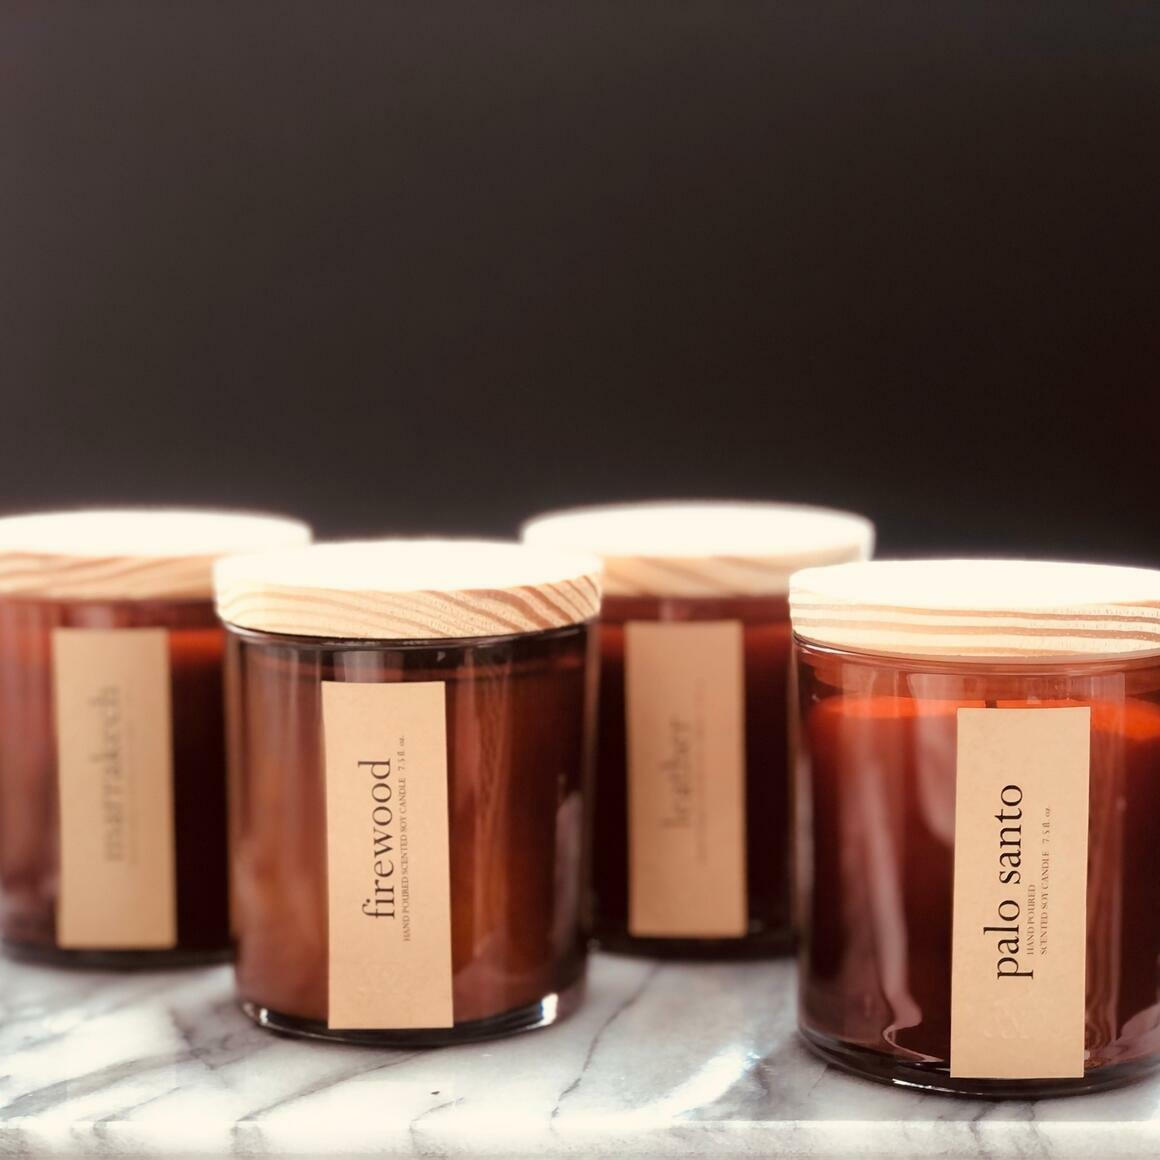 Minimalist Scented Candles - Amber Glass / Lid | Trada Marketplace